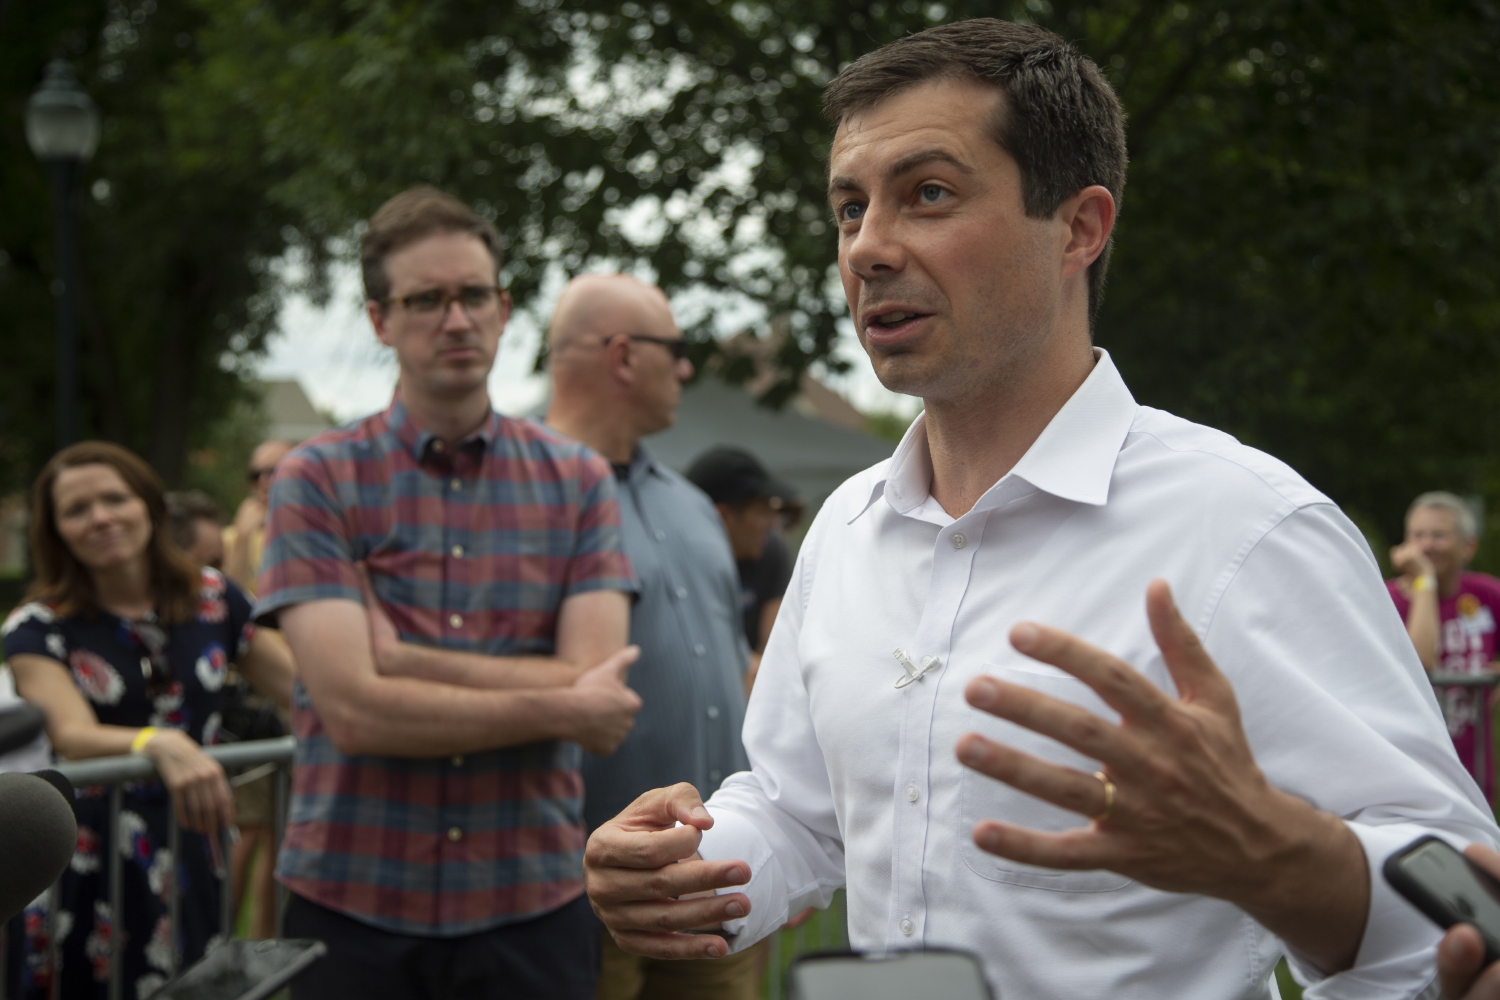 2020+Democratic+candidate+Pete+Buttigieg+addresses+event+attendants+during+a+lawn+event+to+celebrate+opening+his+new+campaign+office+in+downtown+Iowa+City+on+September+2%2C+2019.